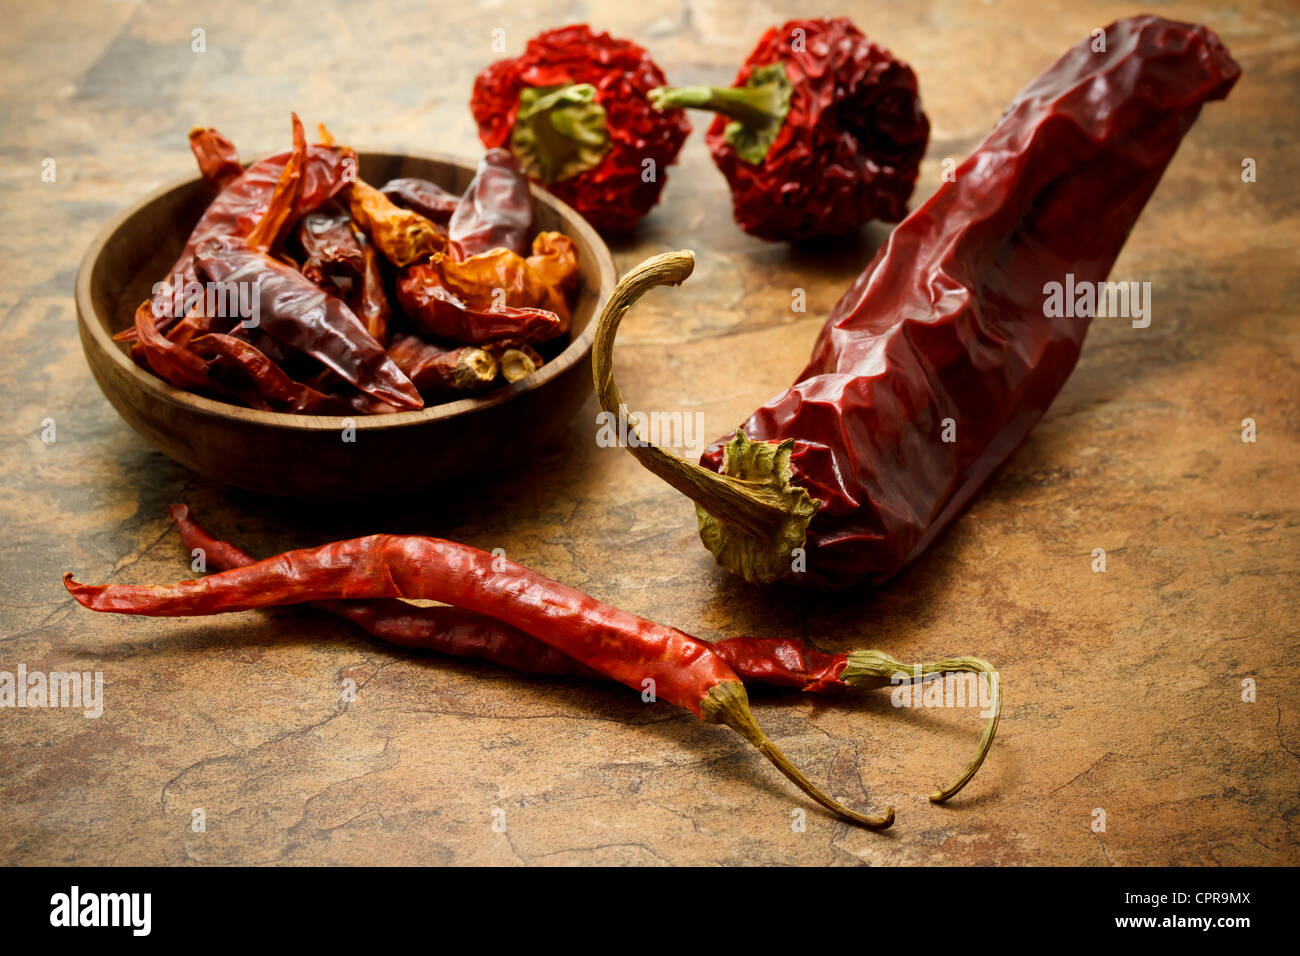 Assortment of dried chili peppers Stock Photo